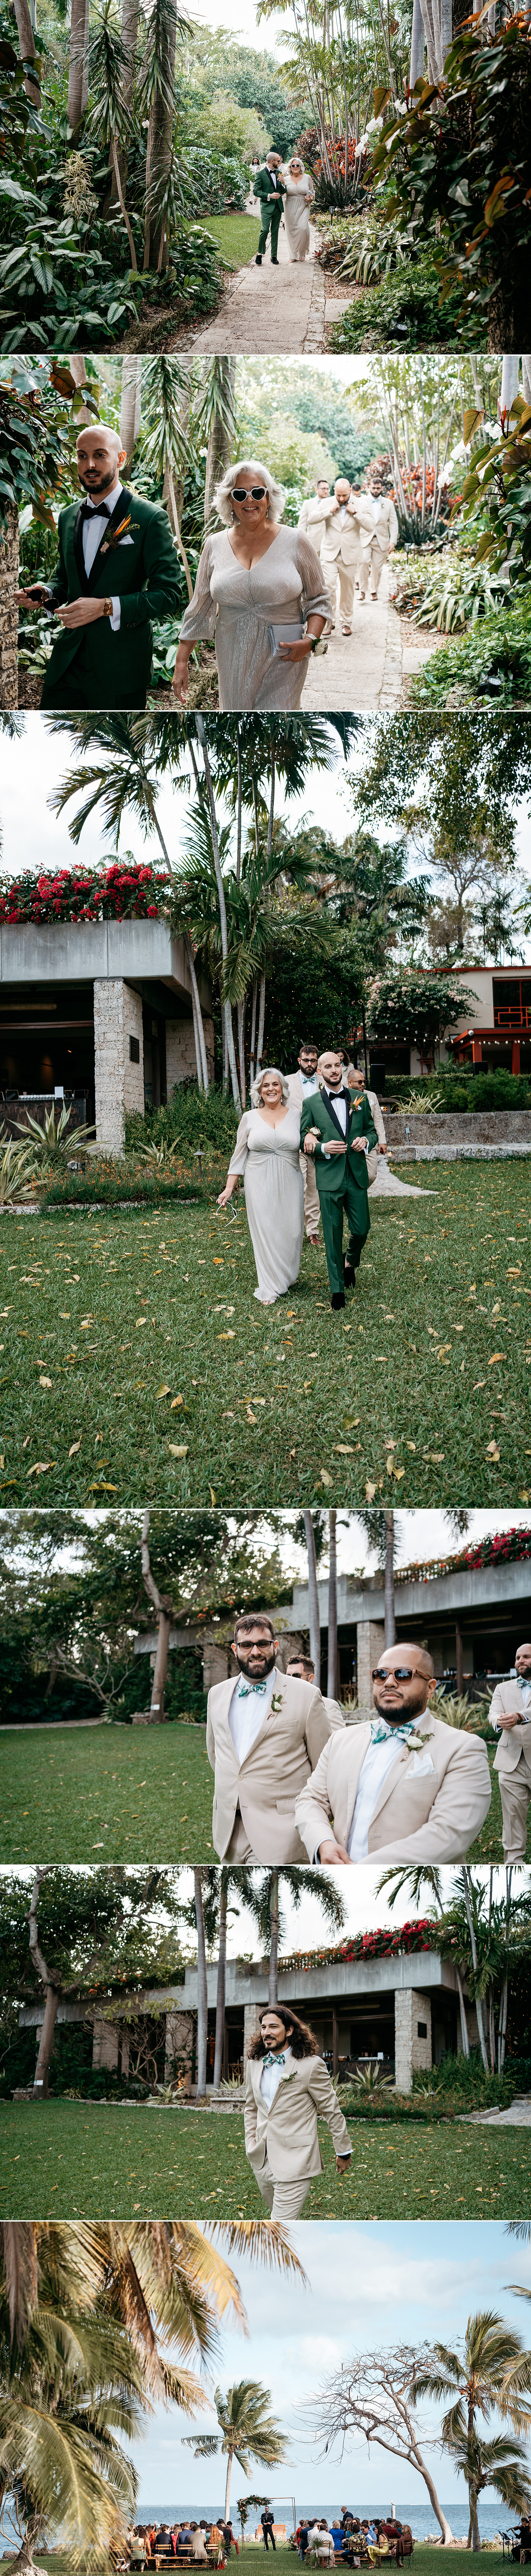 natural wedding photography miami the kampong 0443